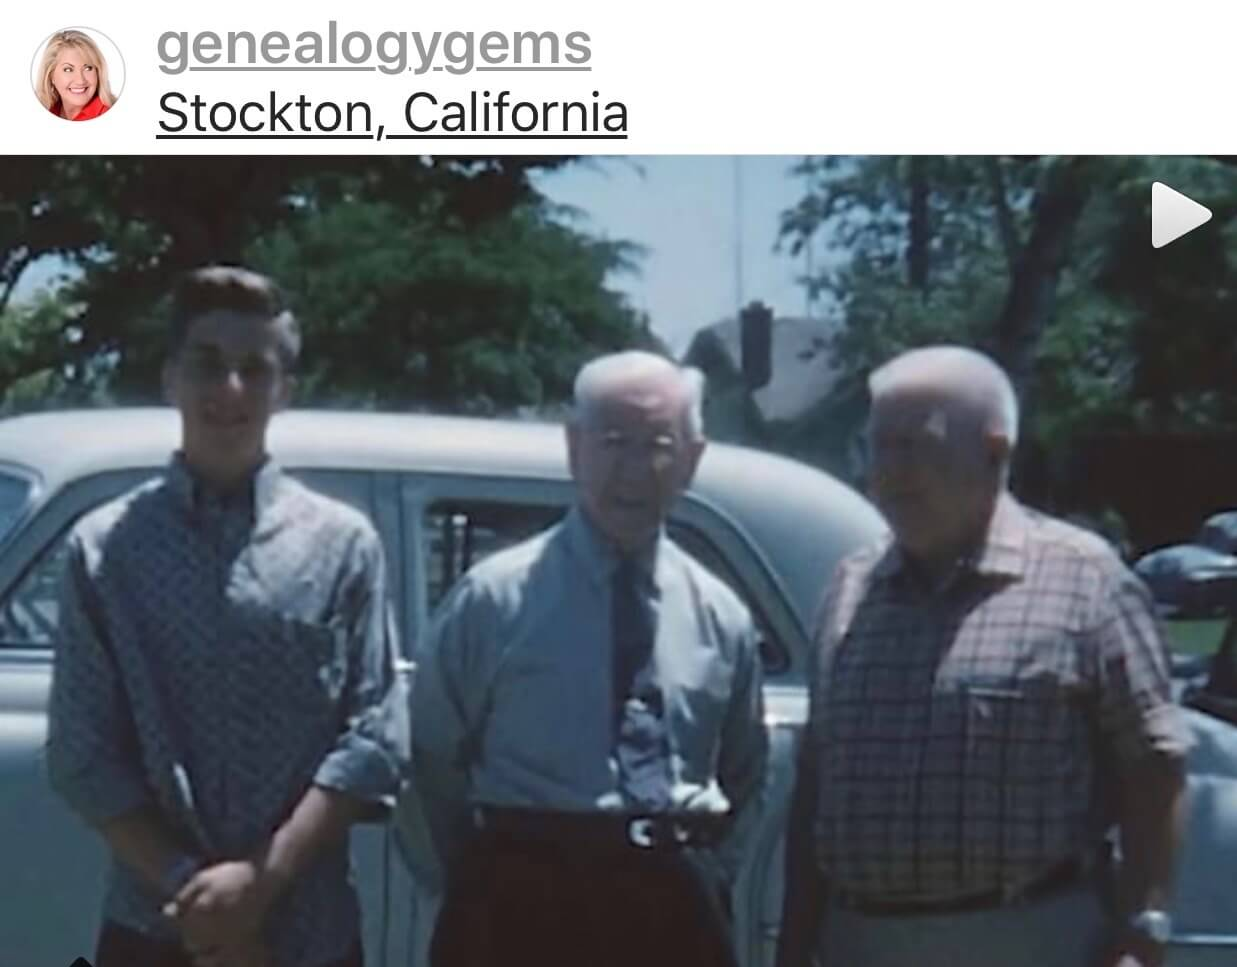 old home movies and genealogy - grandpa